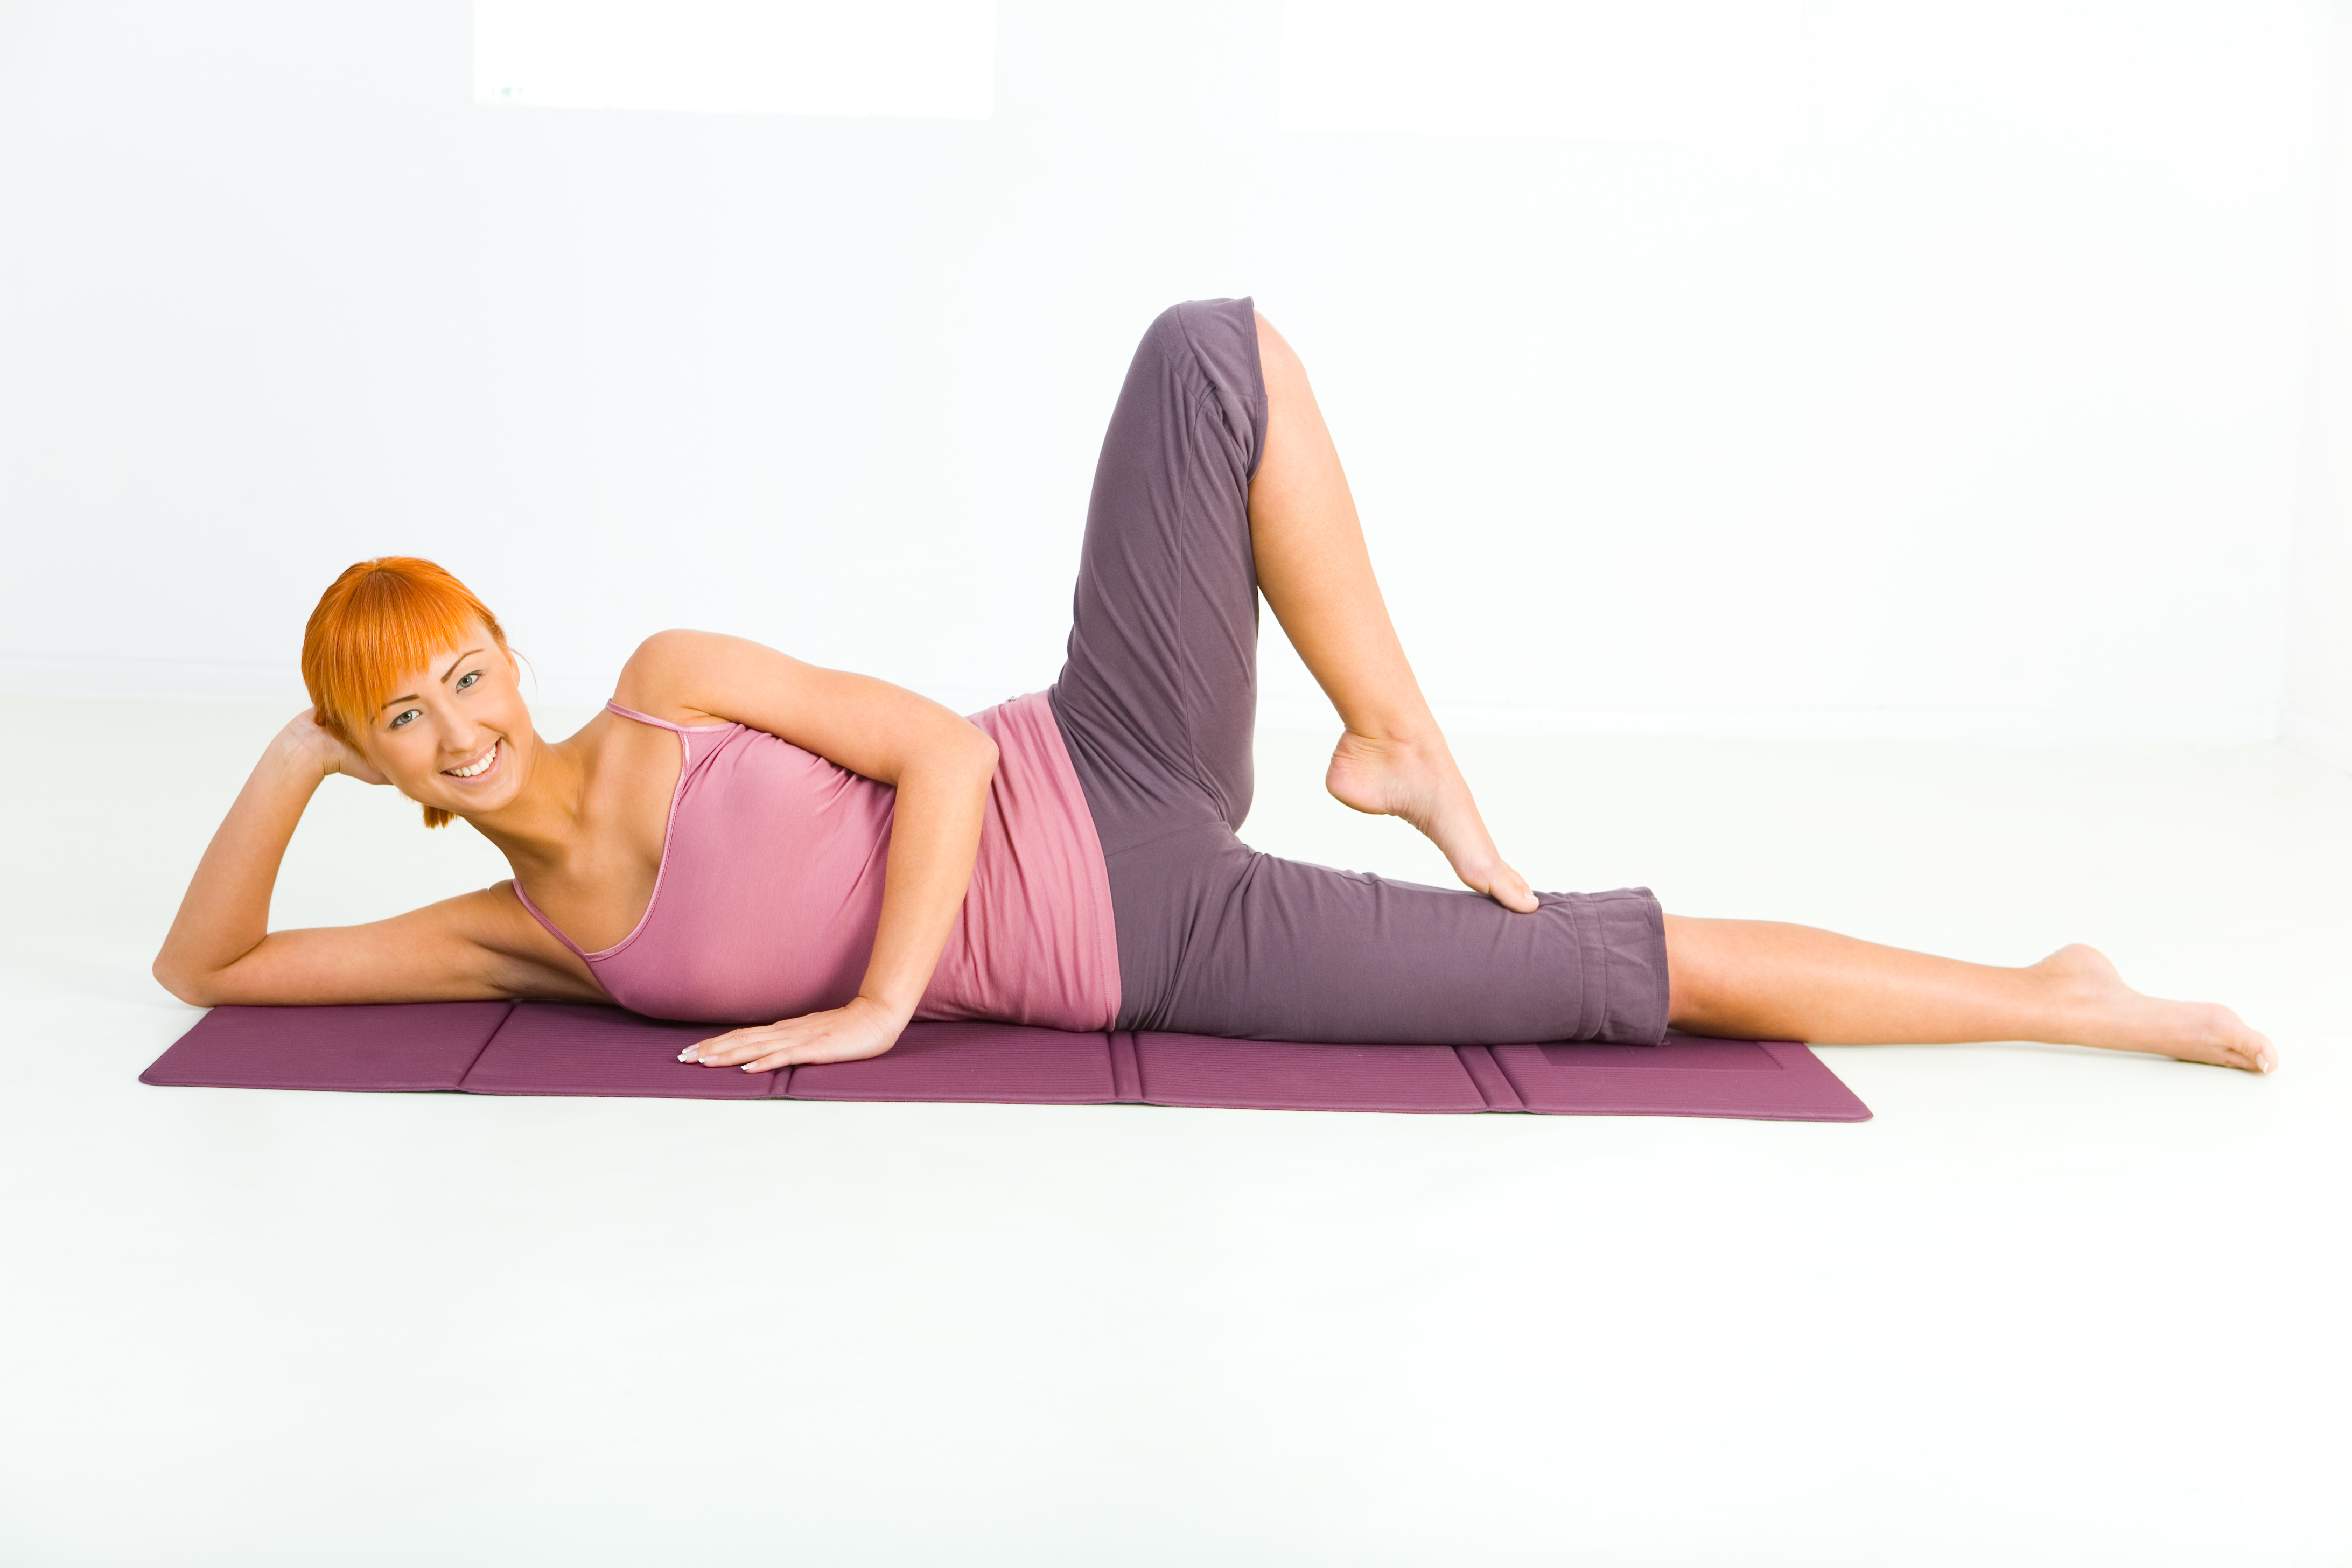 Woman laying down on her side on the floor doing a Pilates exercise move.